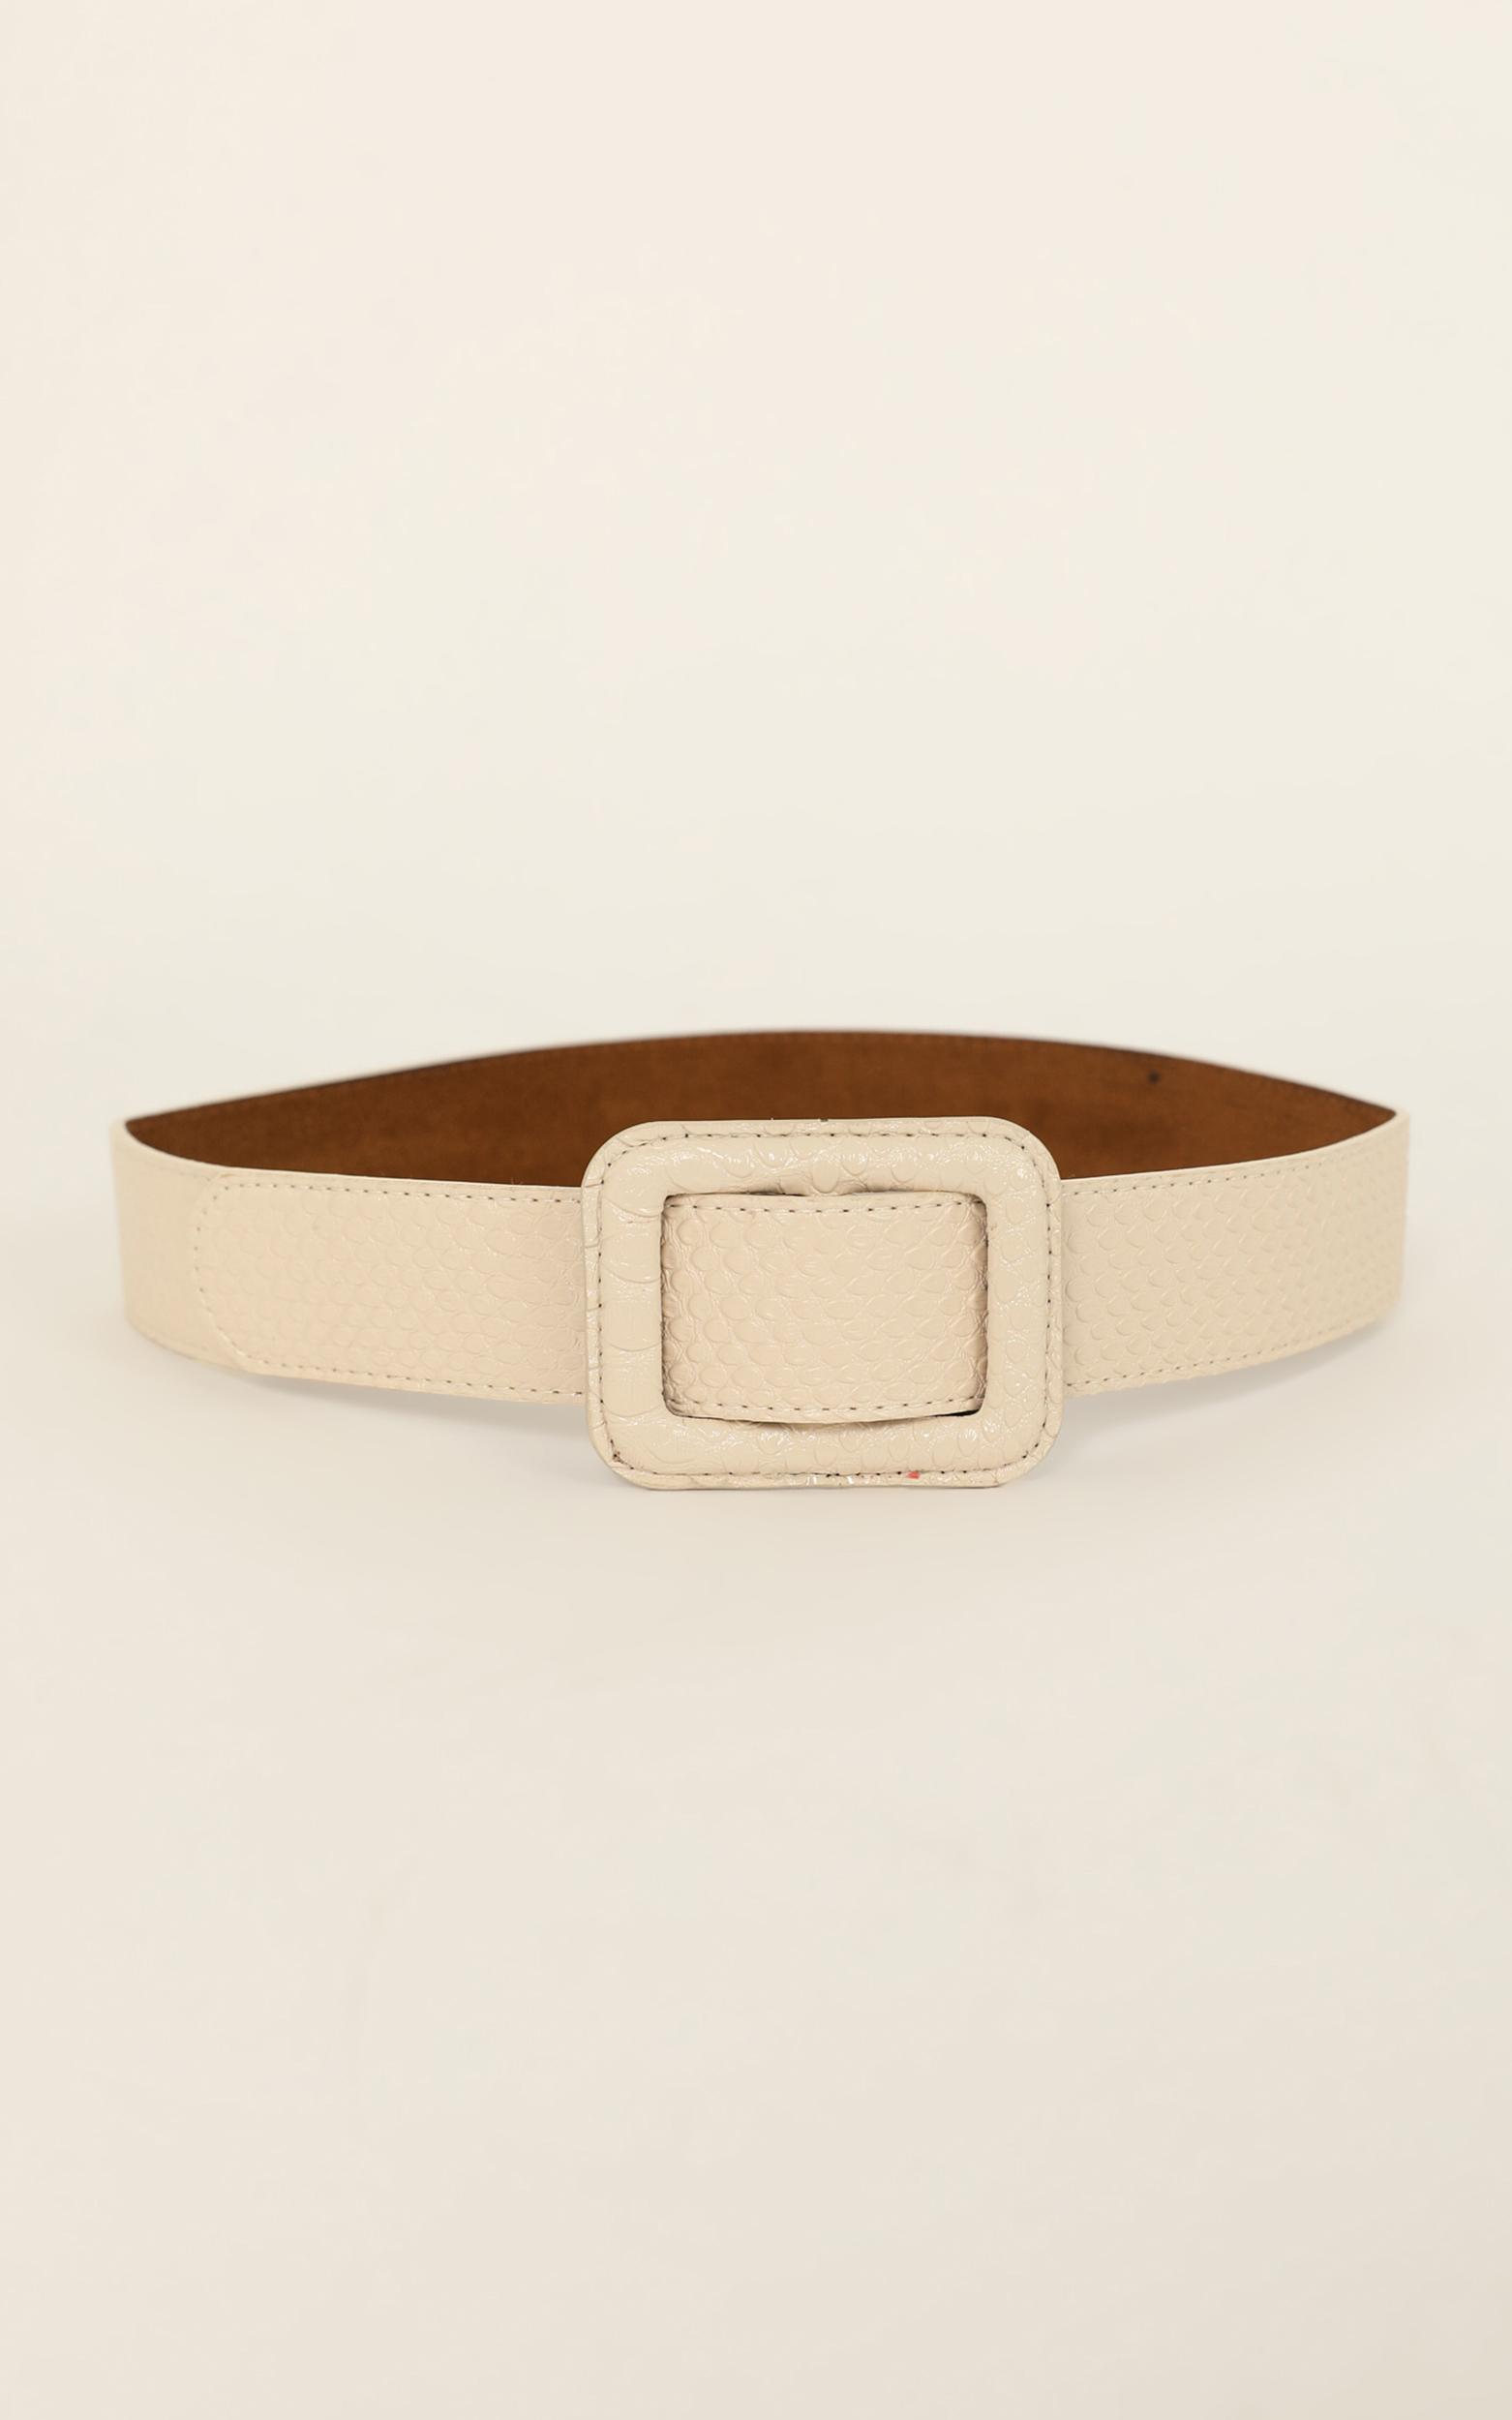 Call On Me Belt In Nude Croc, , hi-res image number null